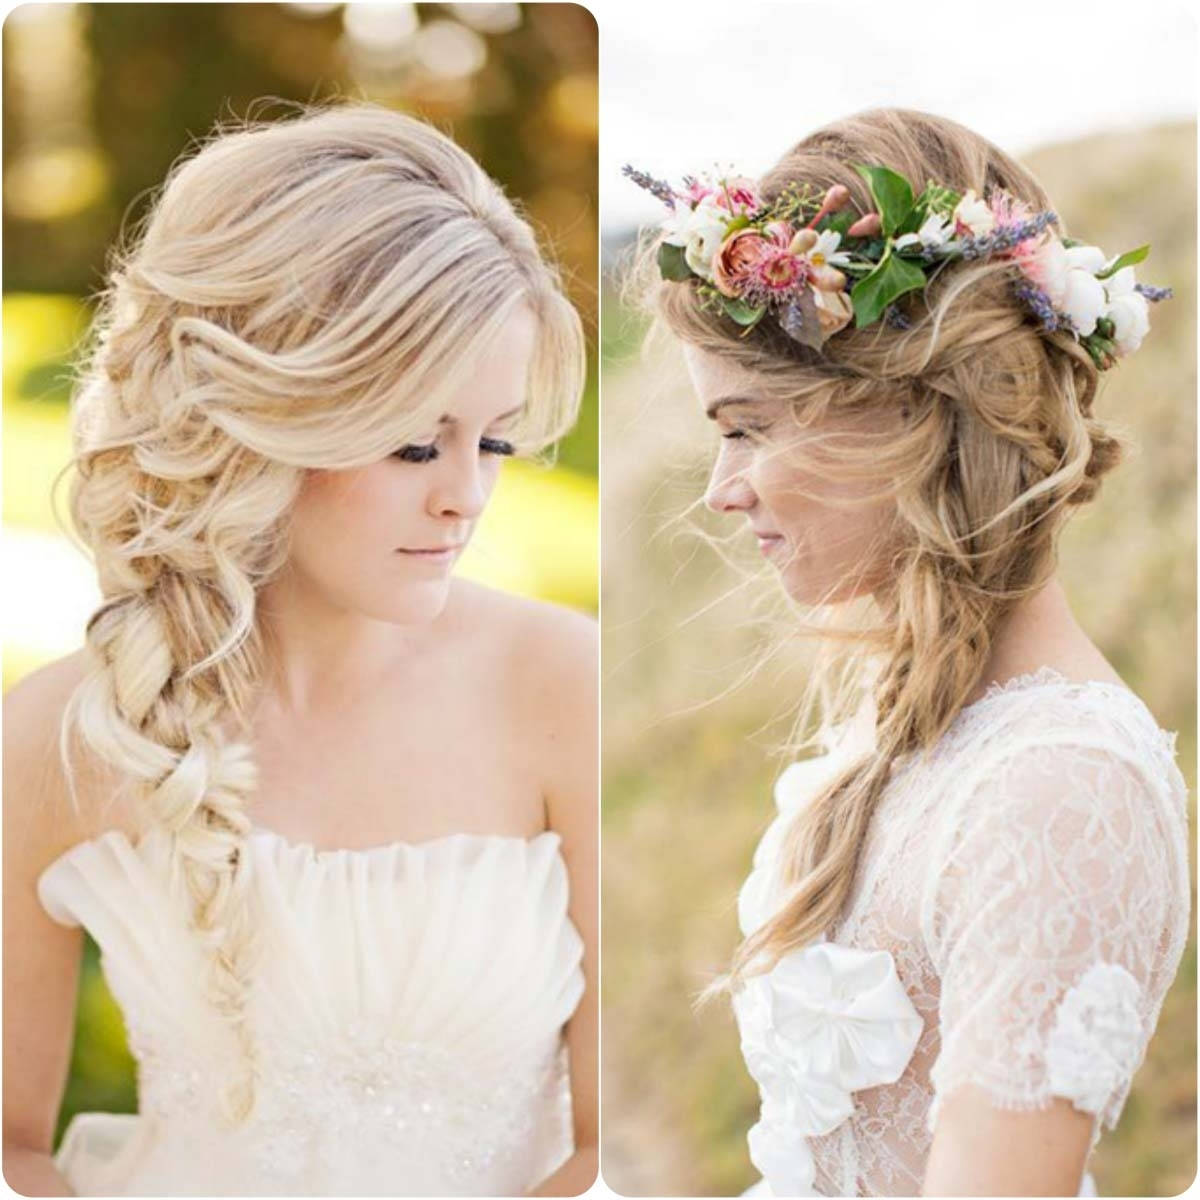 Best And Newest Braided Wedding Hairstyles Throughout Sideraid Hairstyles For Weddings Hairstyle Indian Wedding Fishtail (View 14 of 15)